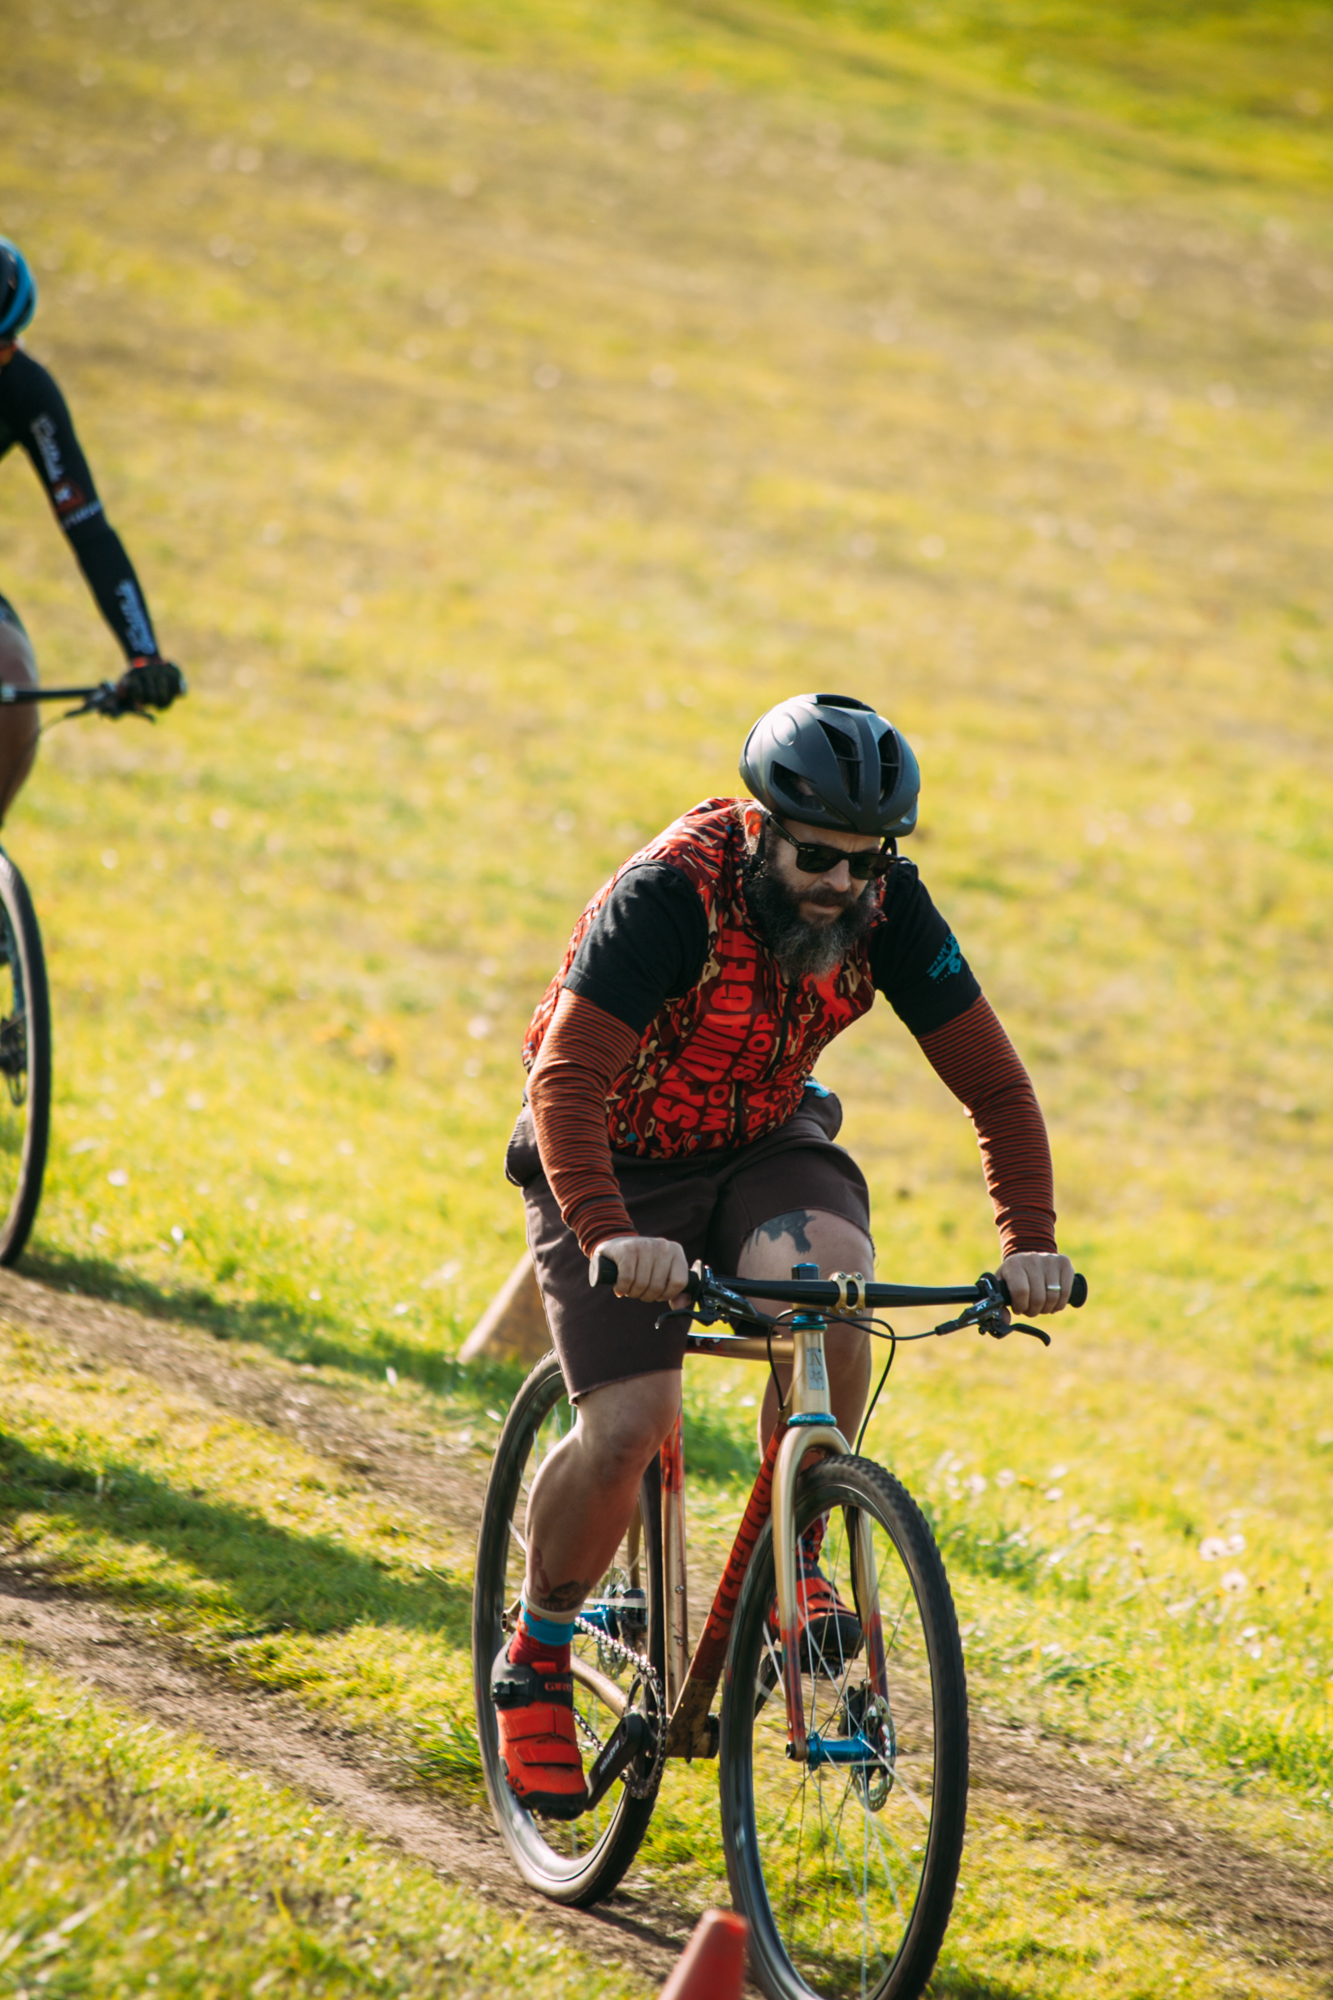 Cyclocross18_CCCX_RainierHS-54-mettlecycling.jpg